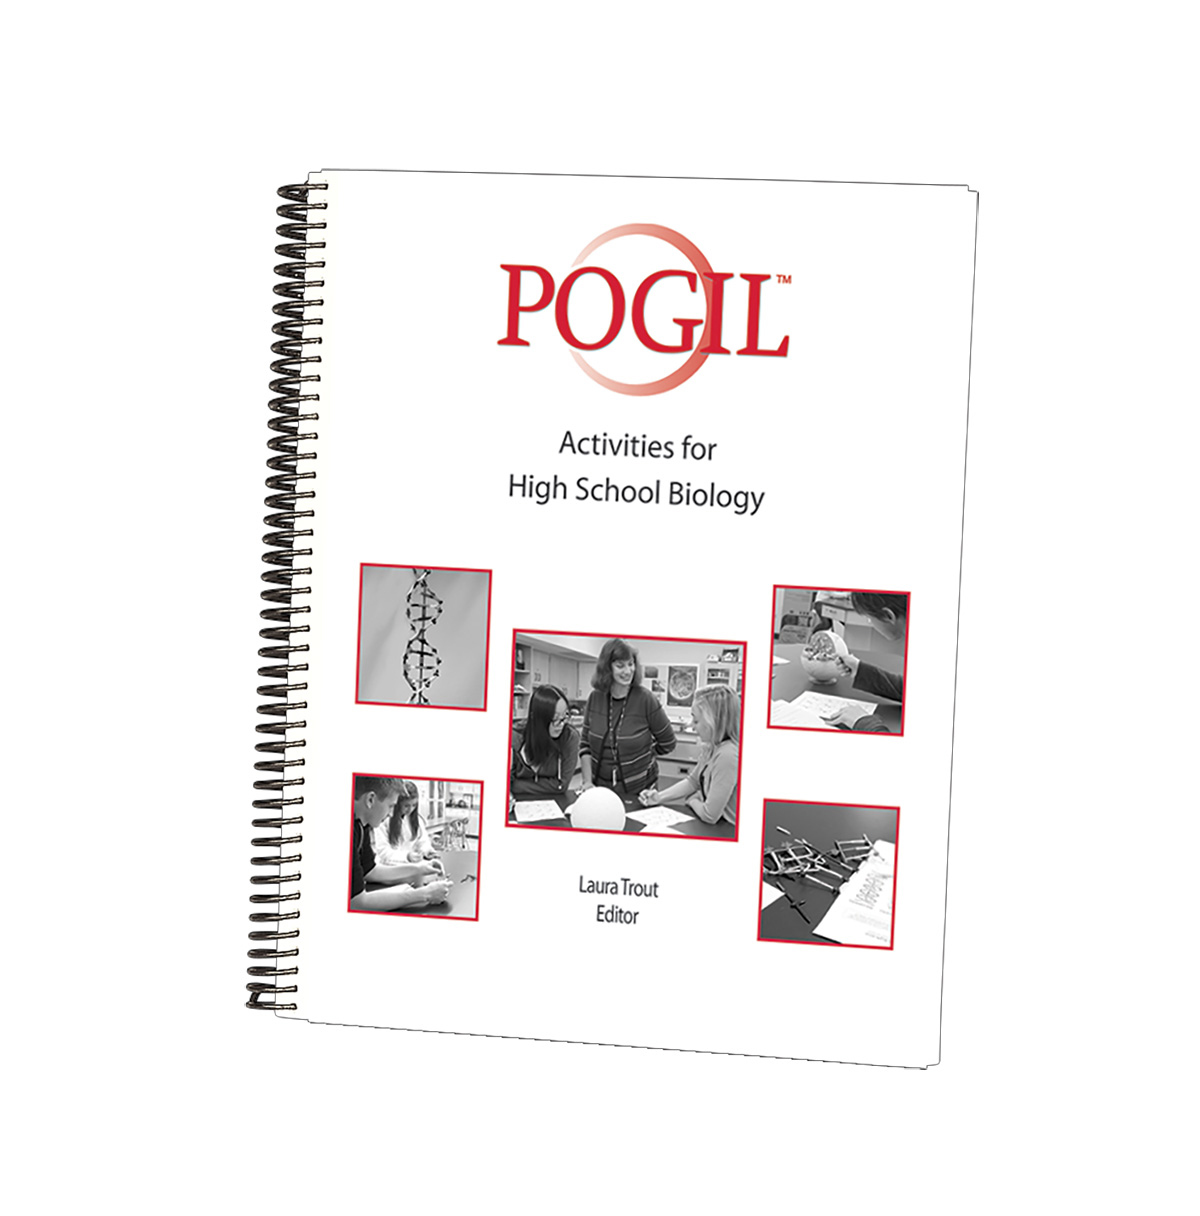 POGIL™ Activities for High School Biology